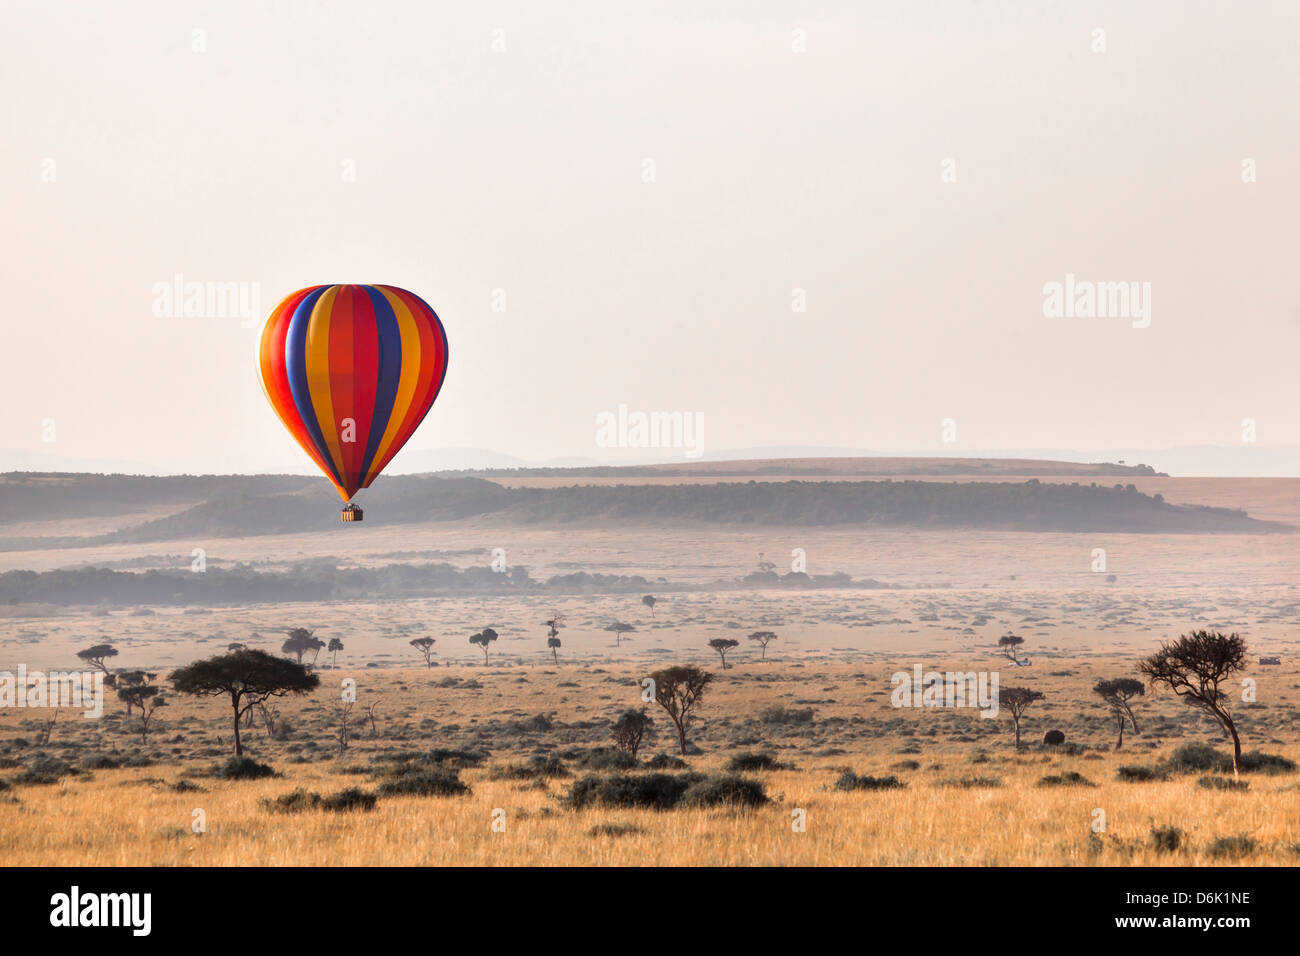 Dawn hot air balloon ride, Masai Mara National Reserve, Kenya, East Africa, Africa - Stock Image